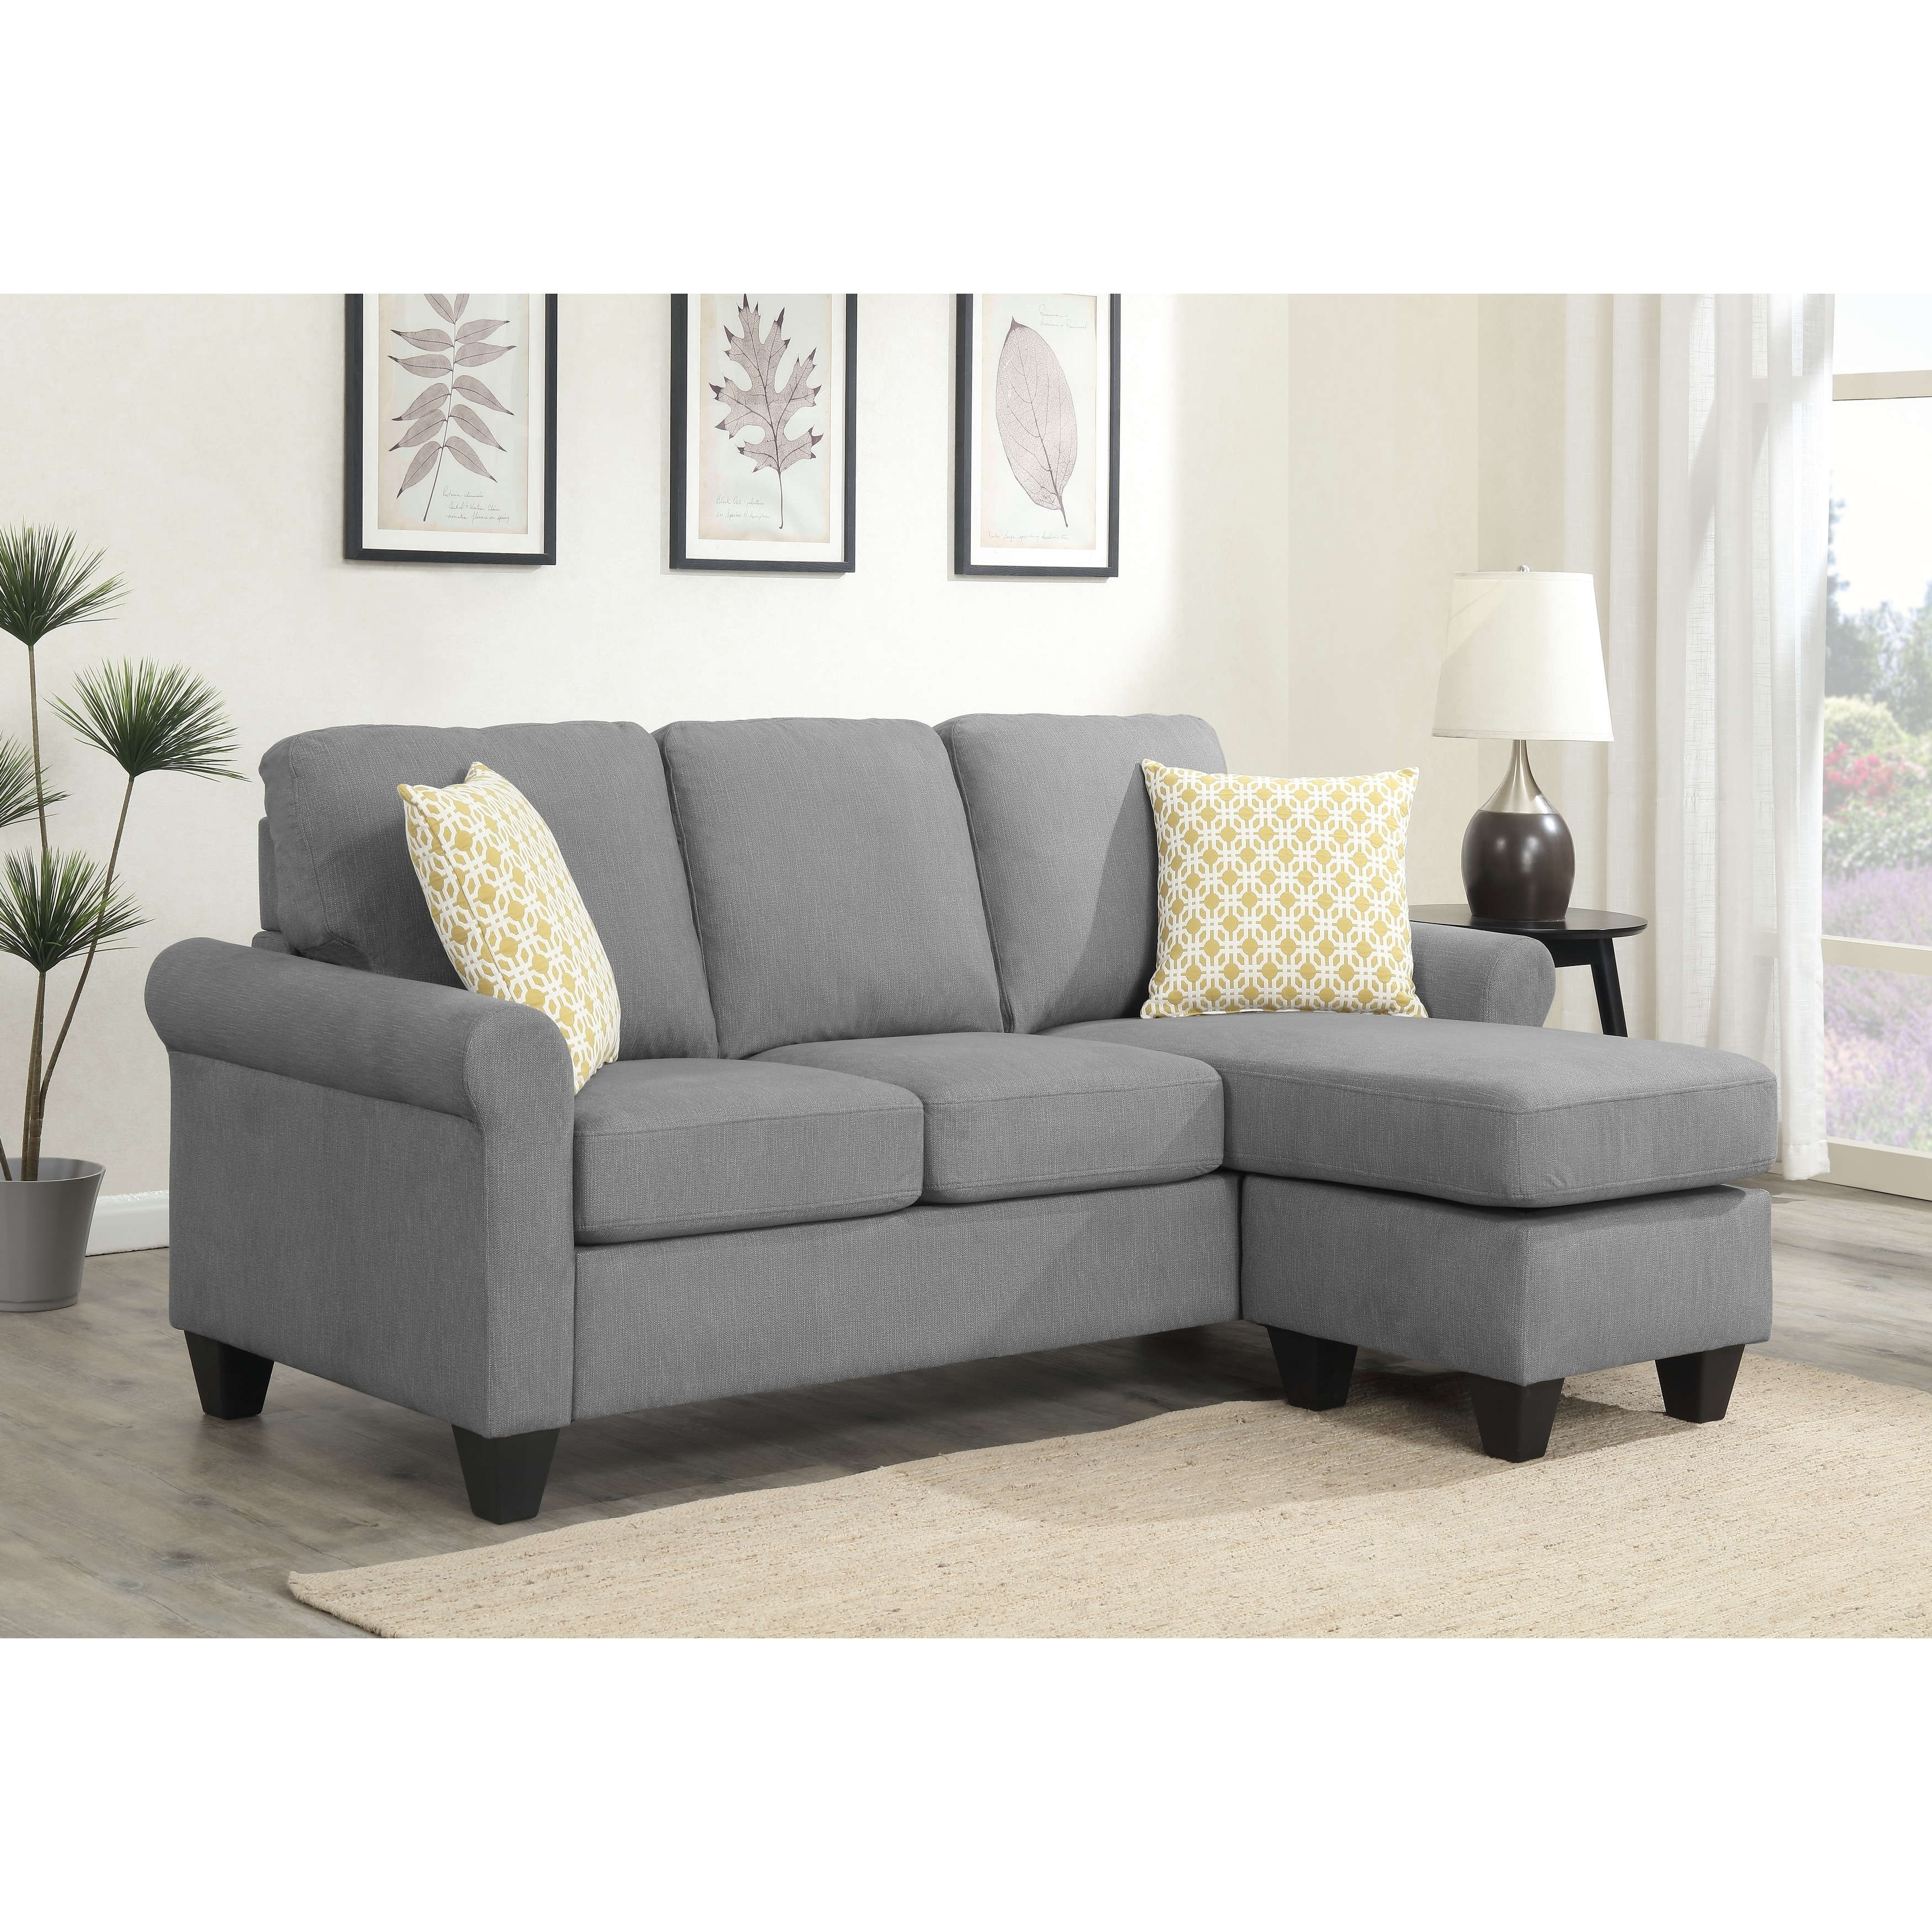 Cool Buy Emerald Home Furnishings Sectional Sofas Online At Inzonedesignstudio Interior Chair Design Inzonedesignstudiocom